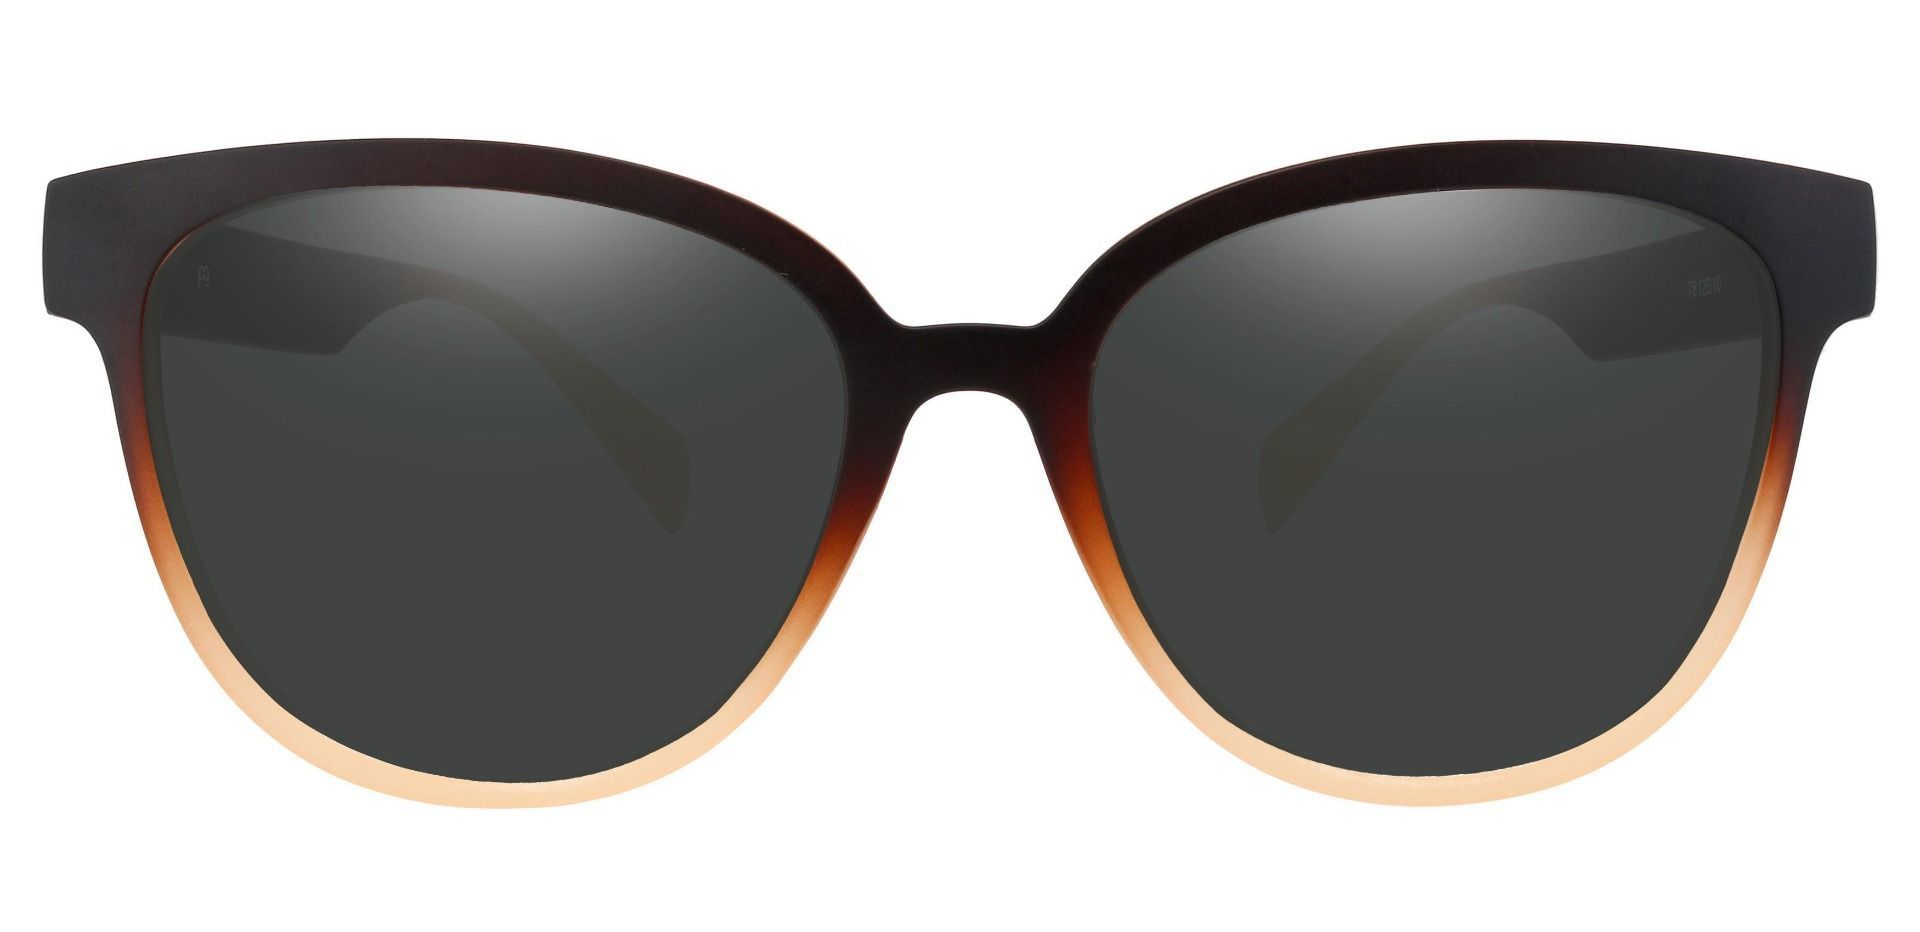 Newport Oval Lined Bifocal Sunglasses - Brown Frame With Gray Lenses